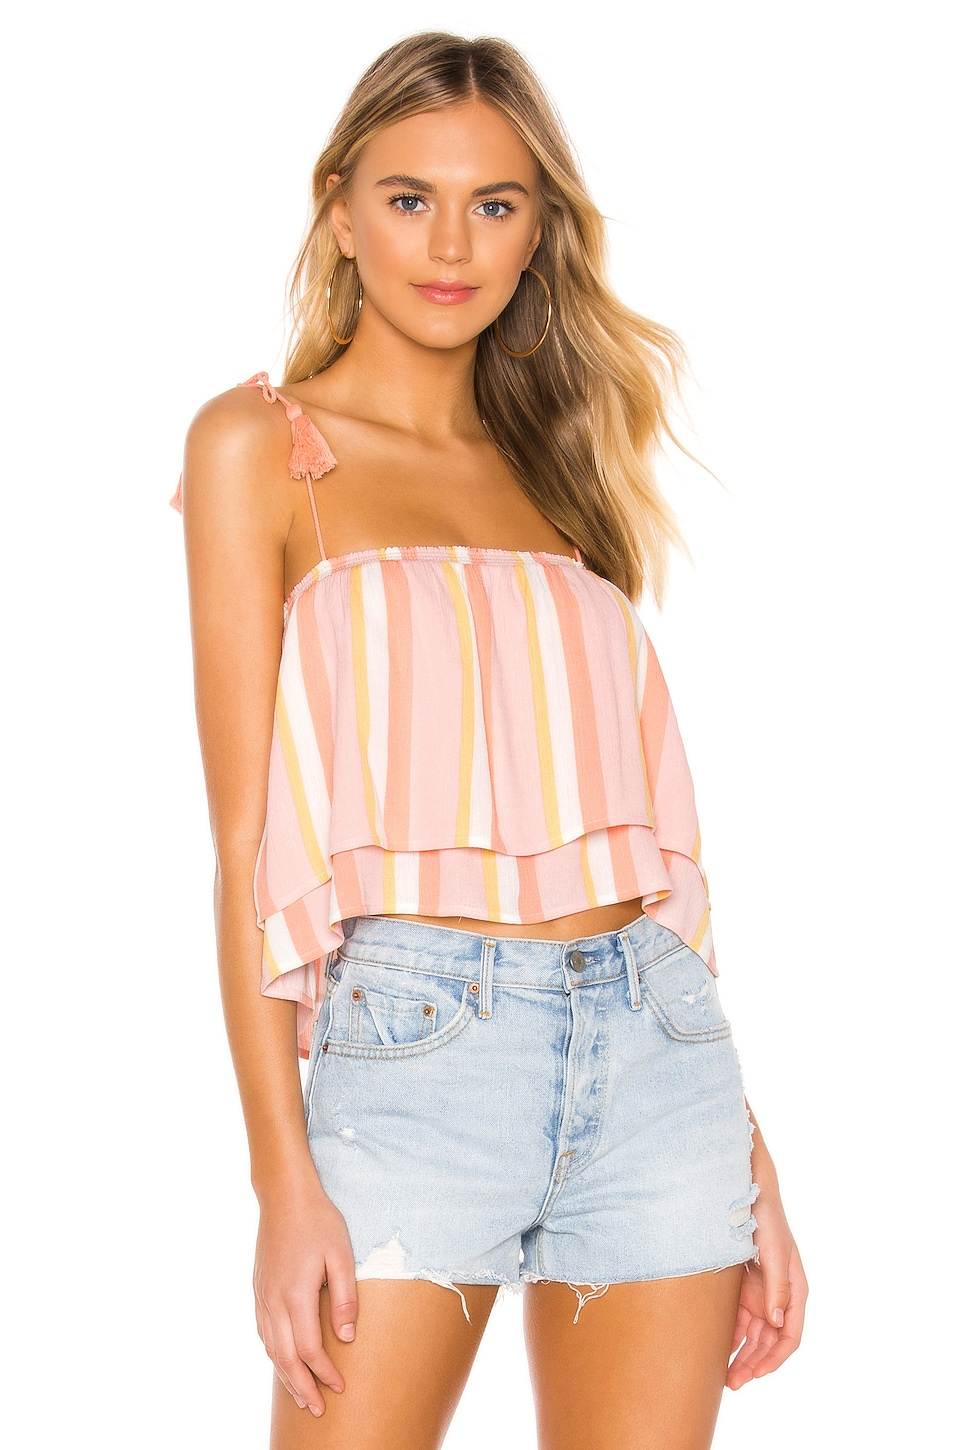 BB Dakota Tassels In The Sand Top in Pink Blossom